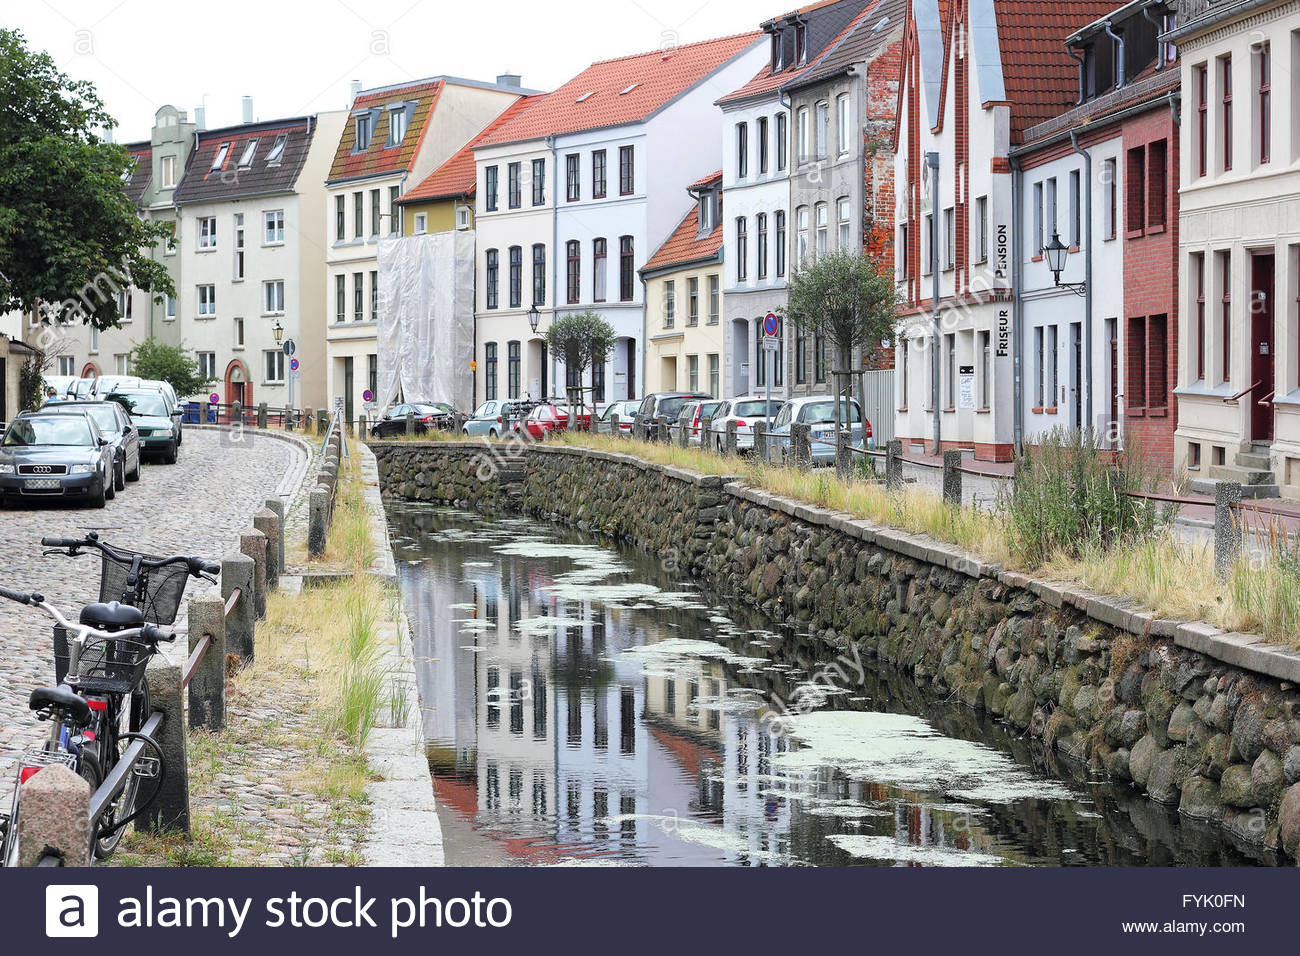 City moat in the old town of Wismar - Stock Image